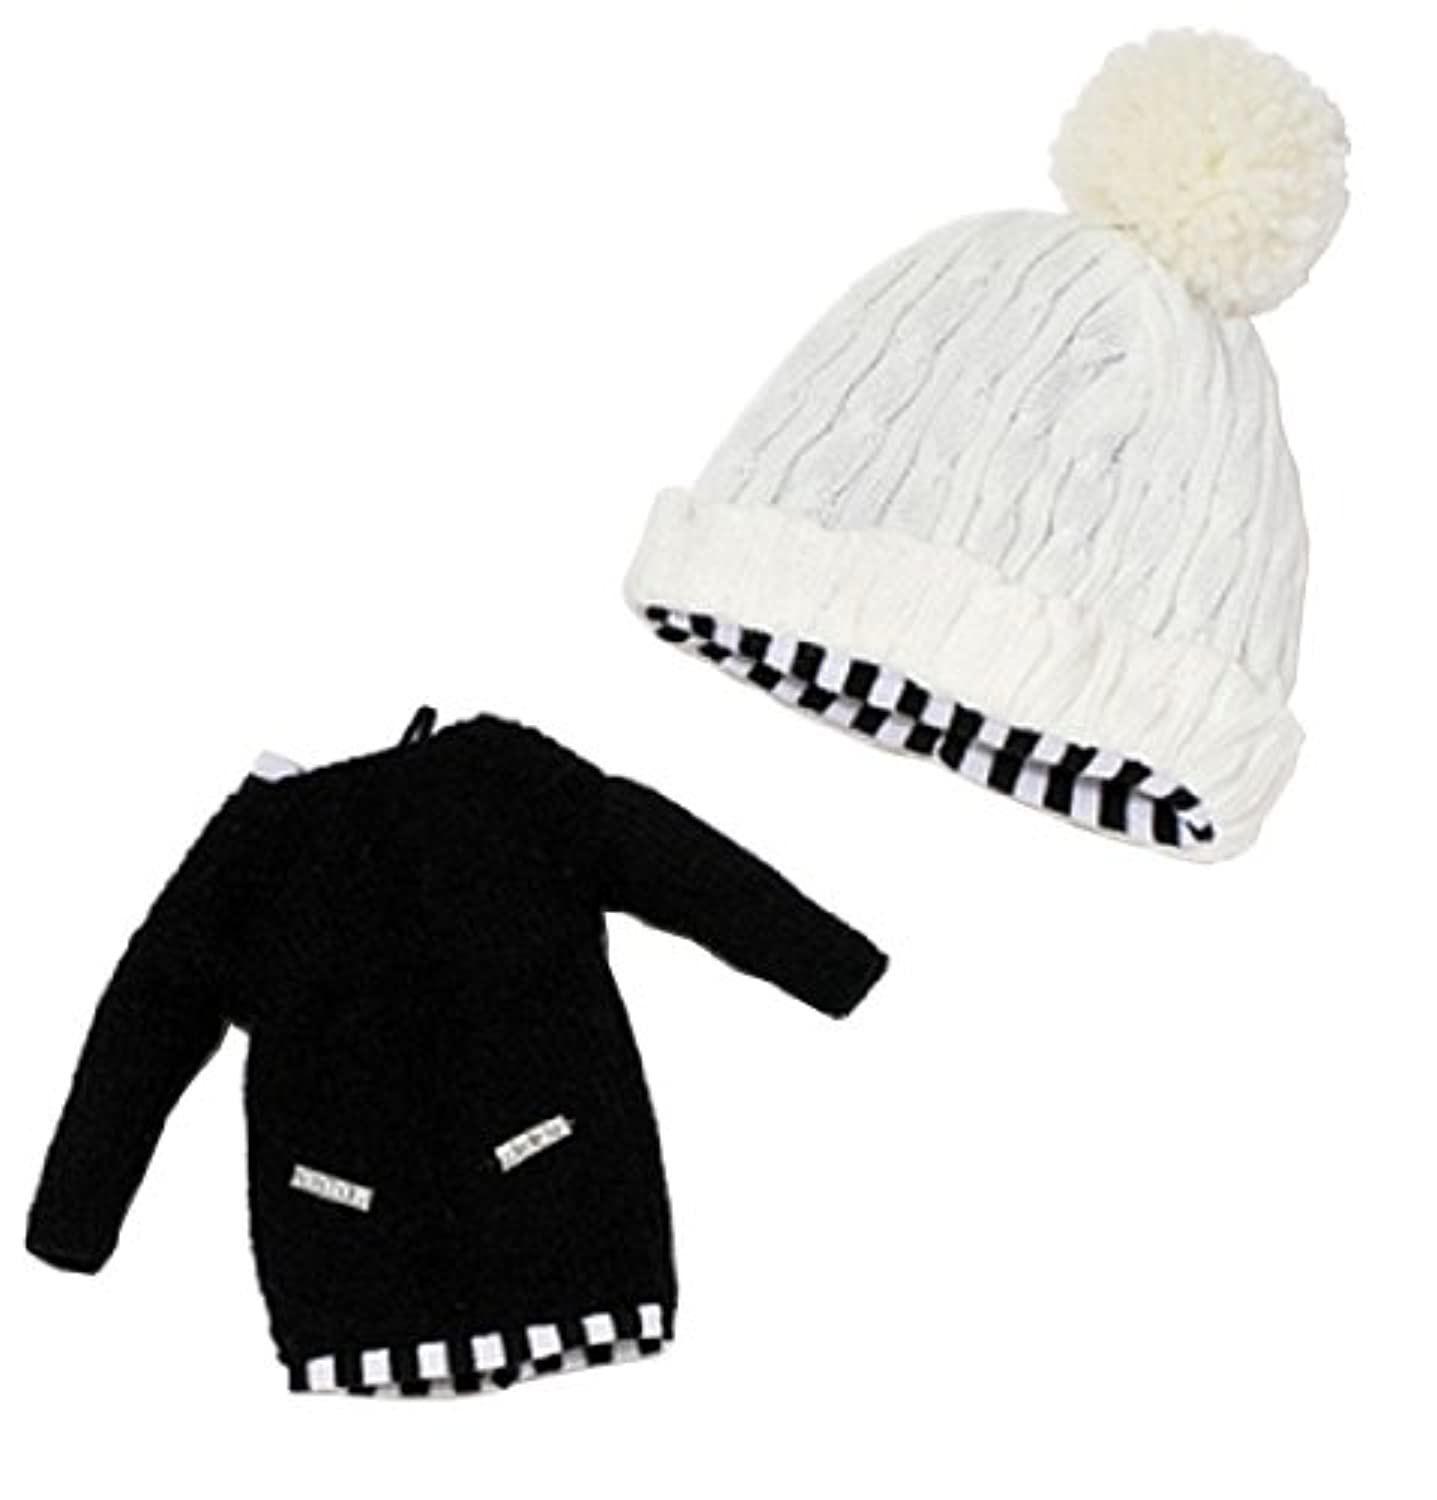 OutFit selection Knit One-piece set black ver. (ニットワンピースセット ブラックバージョン) O-819